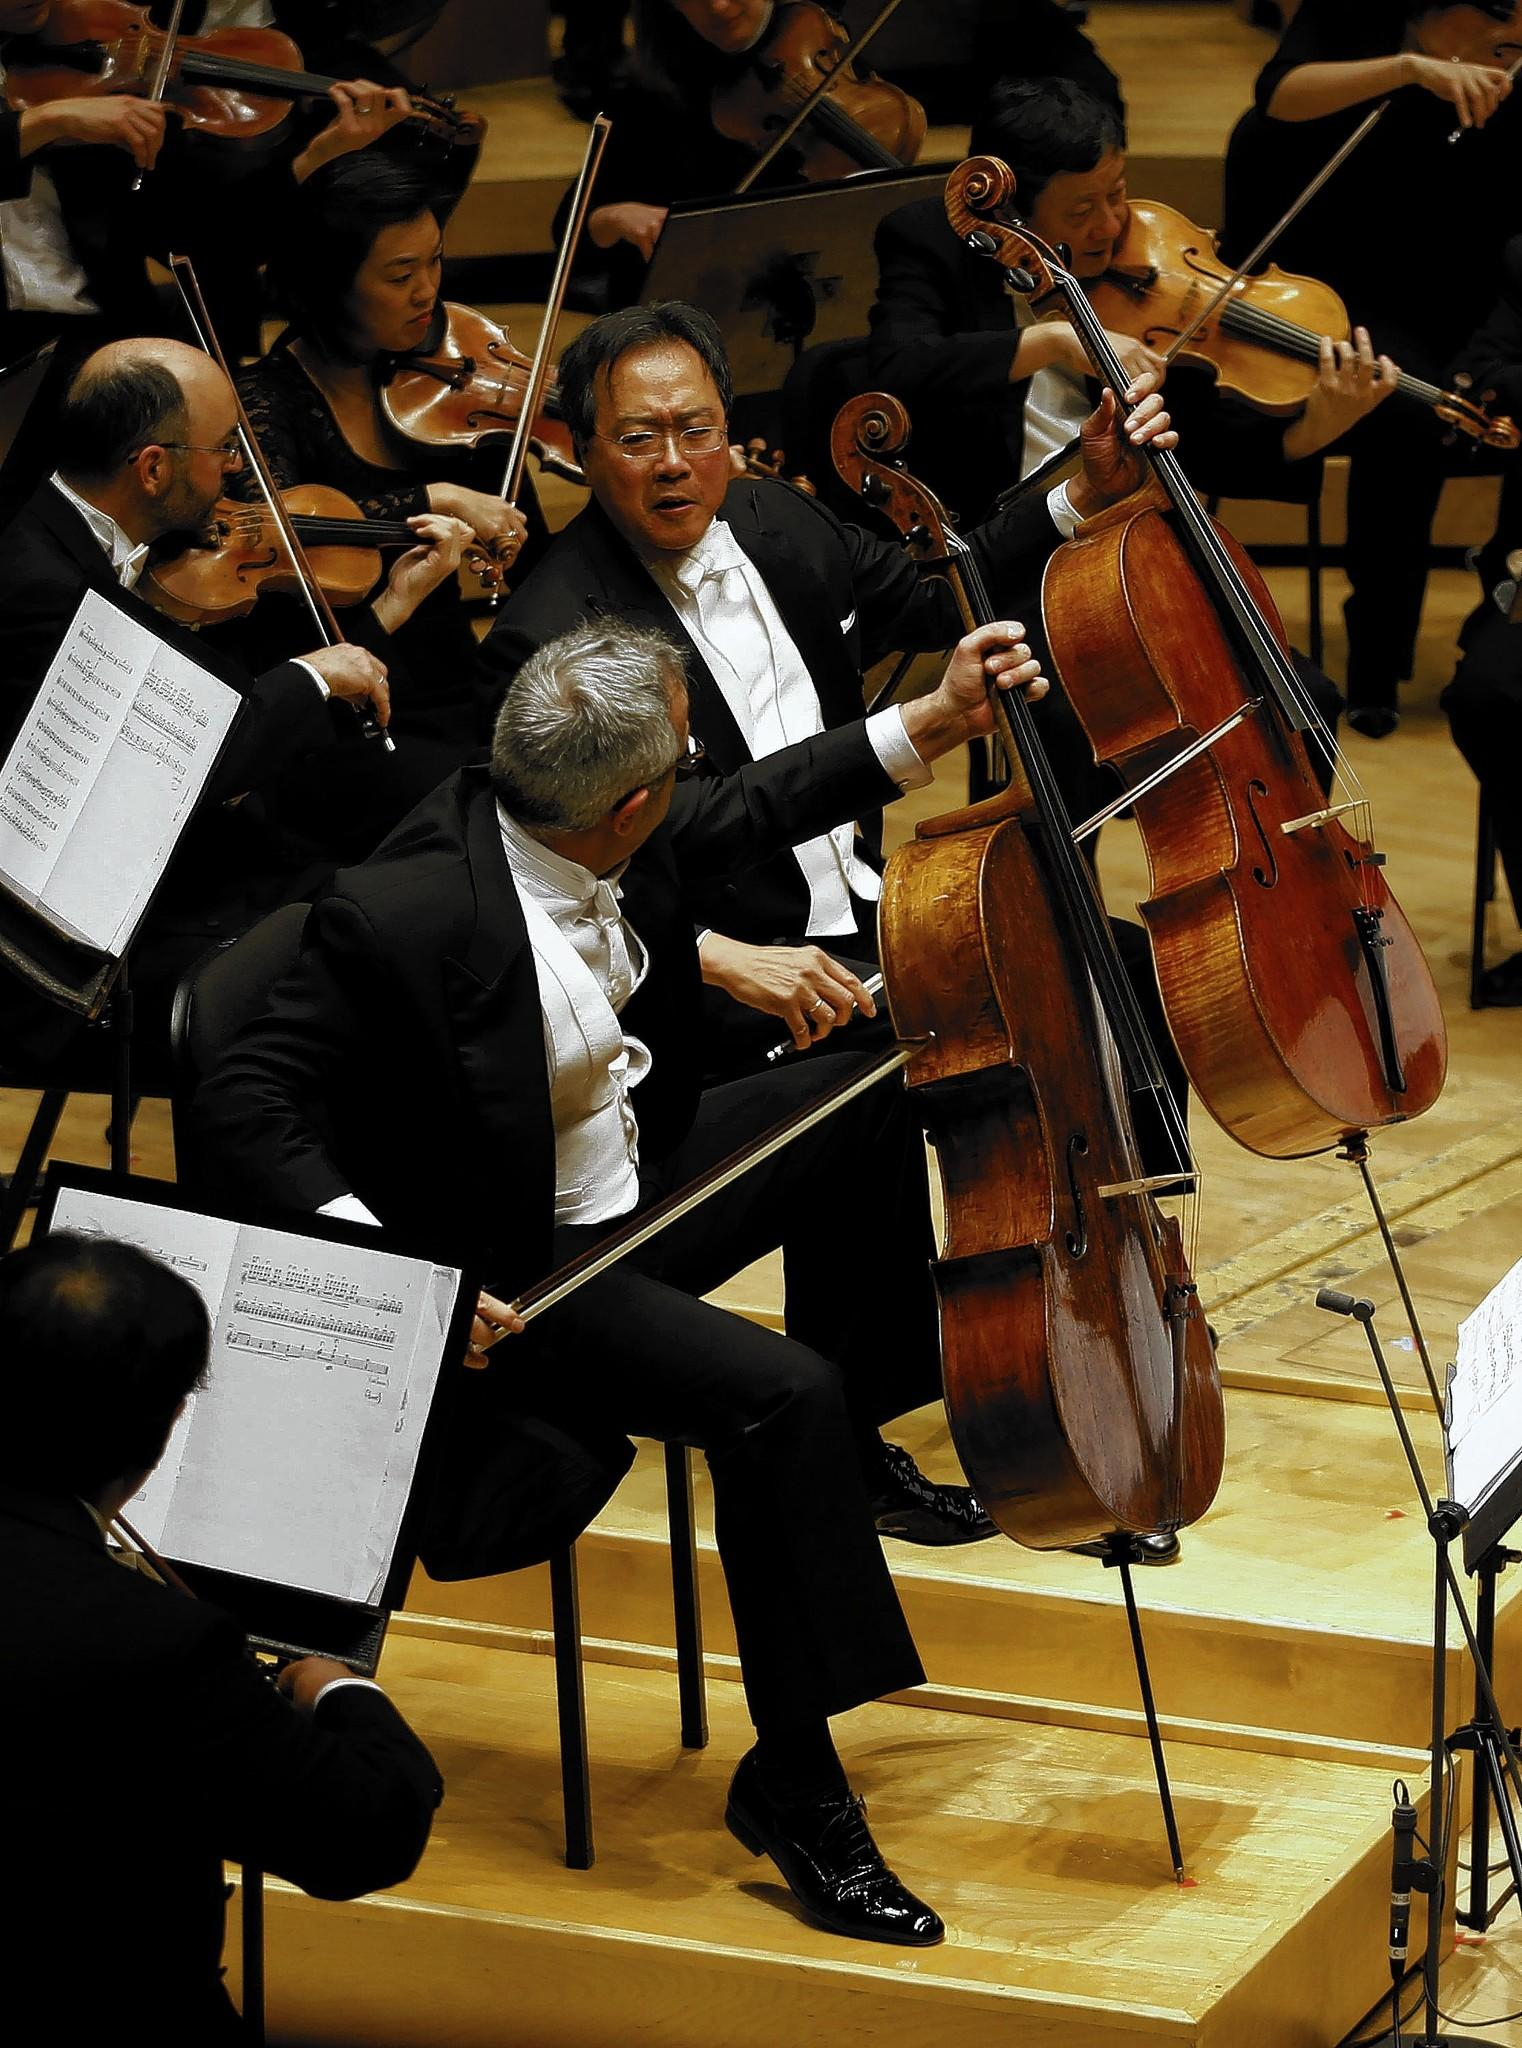 Cellist Yo-Yo Ma (right) and Giovanni Sollima perform with the CSO.